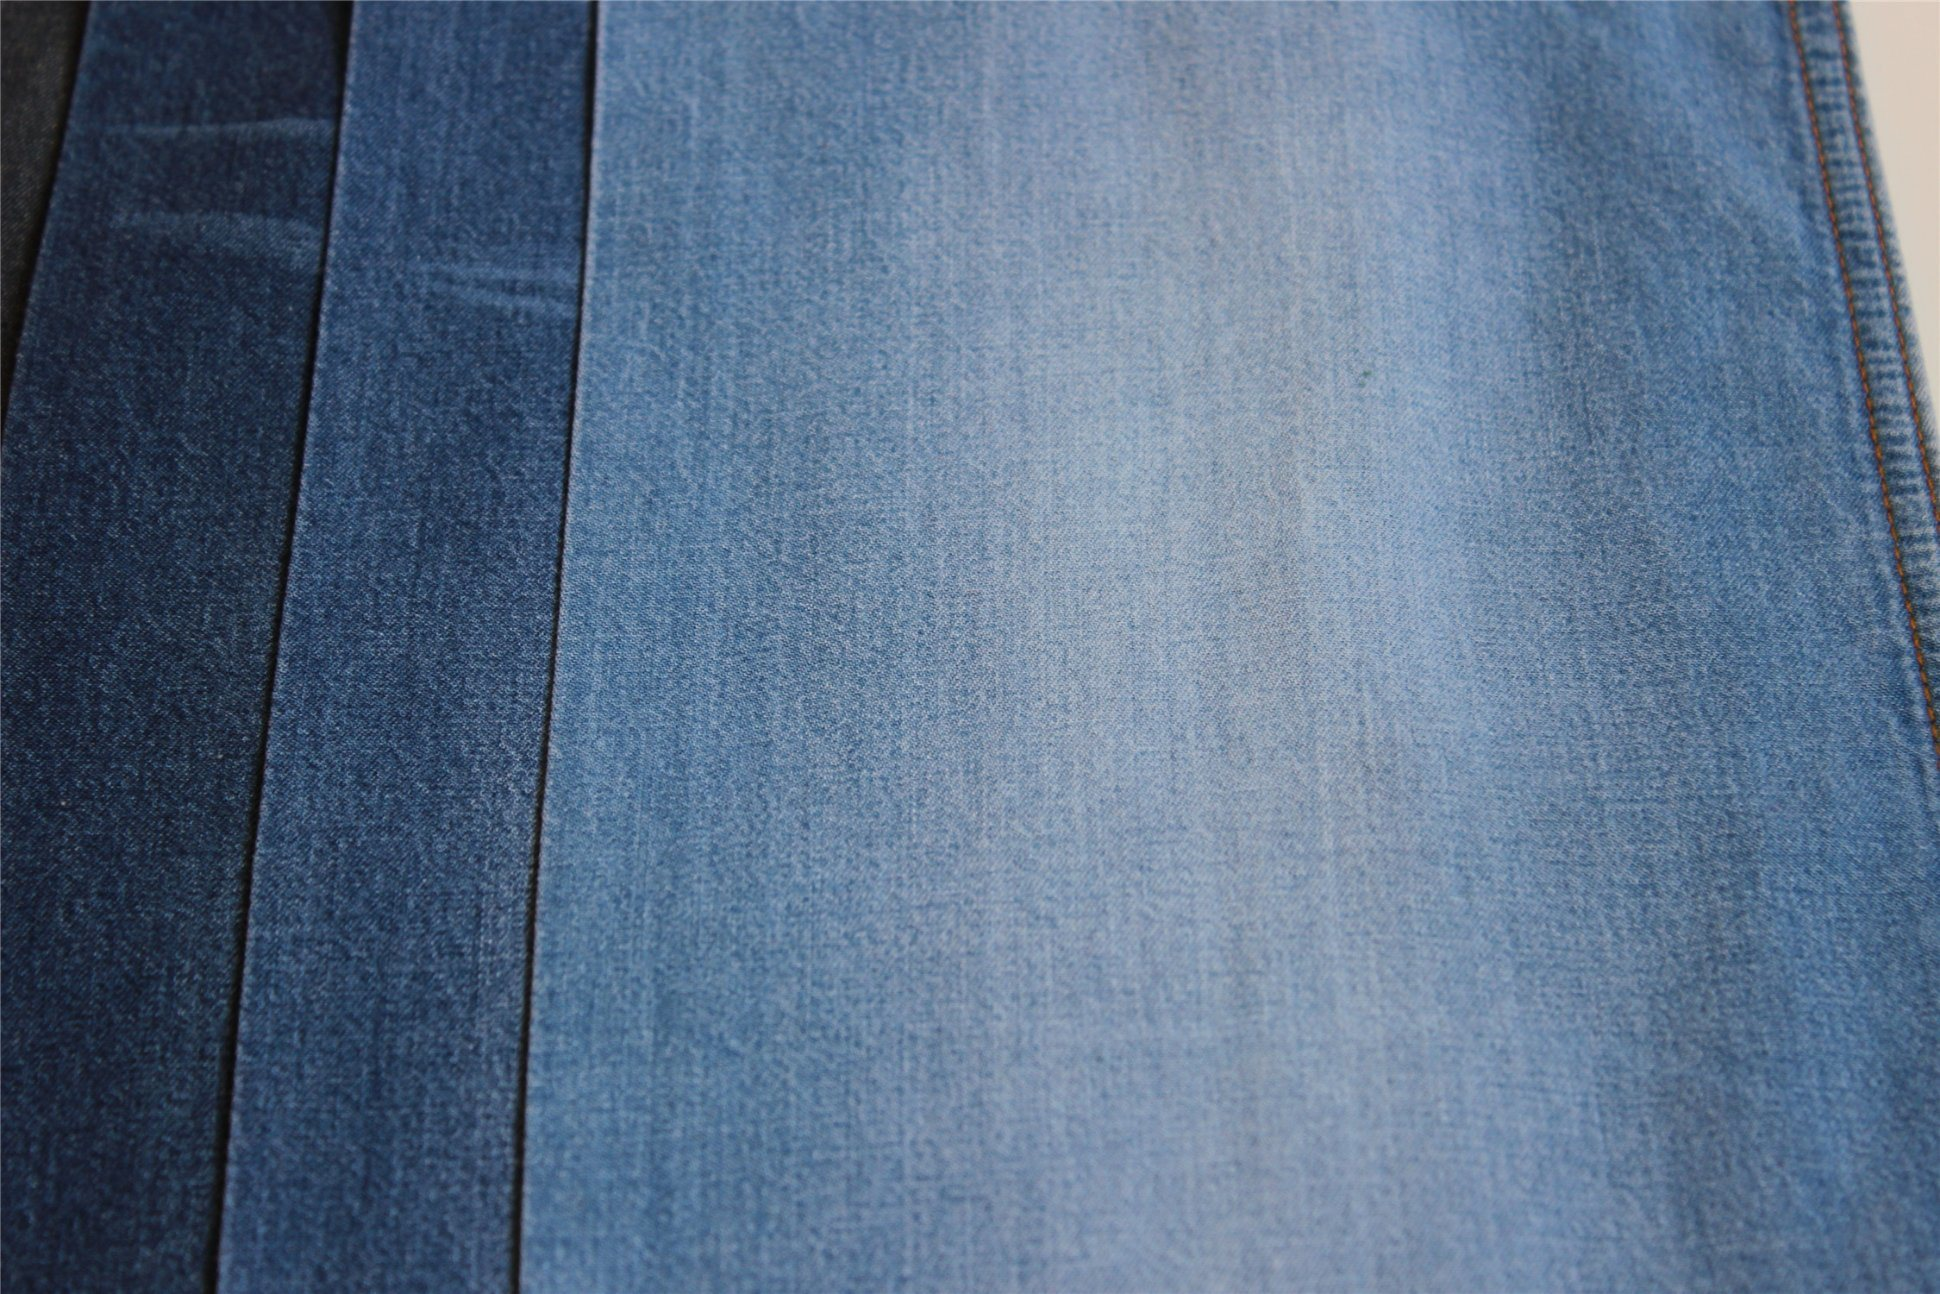 Tencel Cotton Denim Twill Indigo Denim For T-Shirt and Blouse Garments